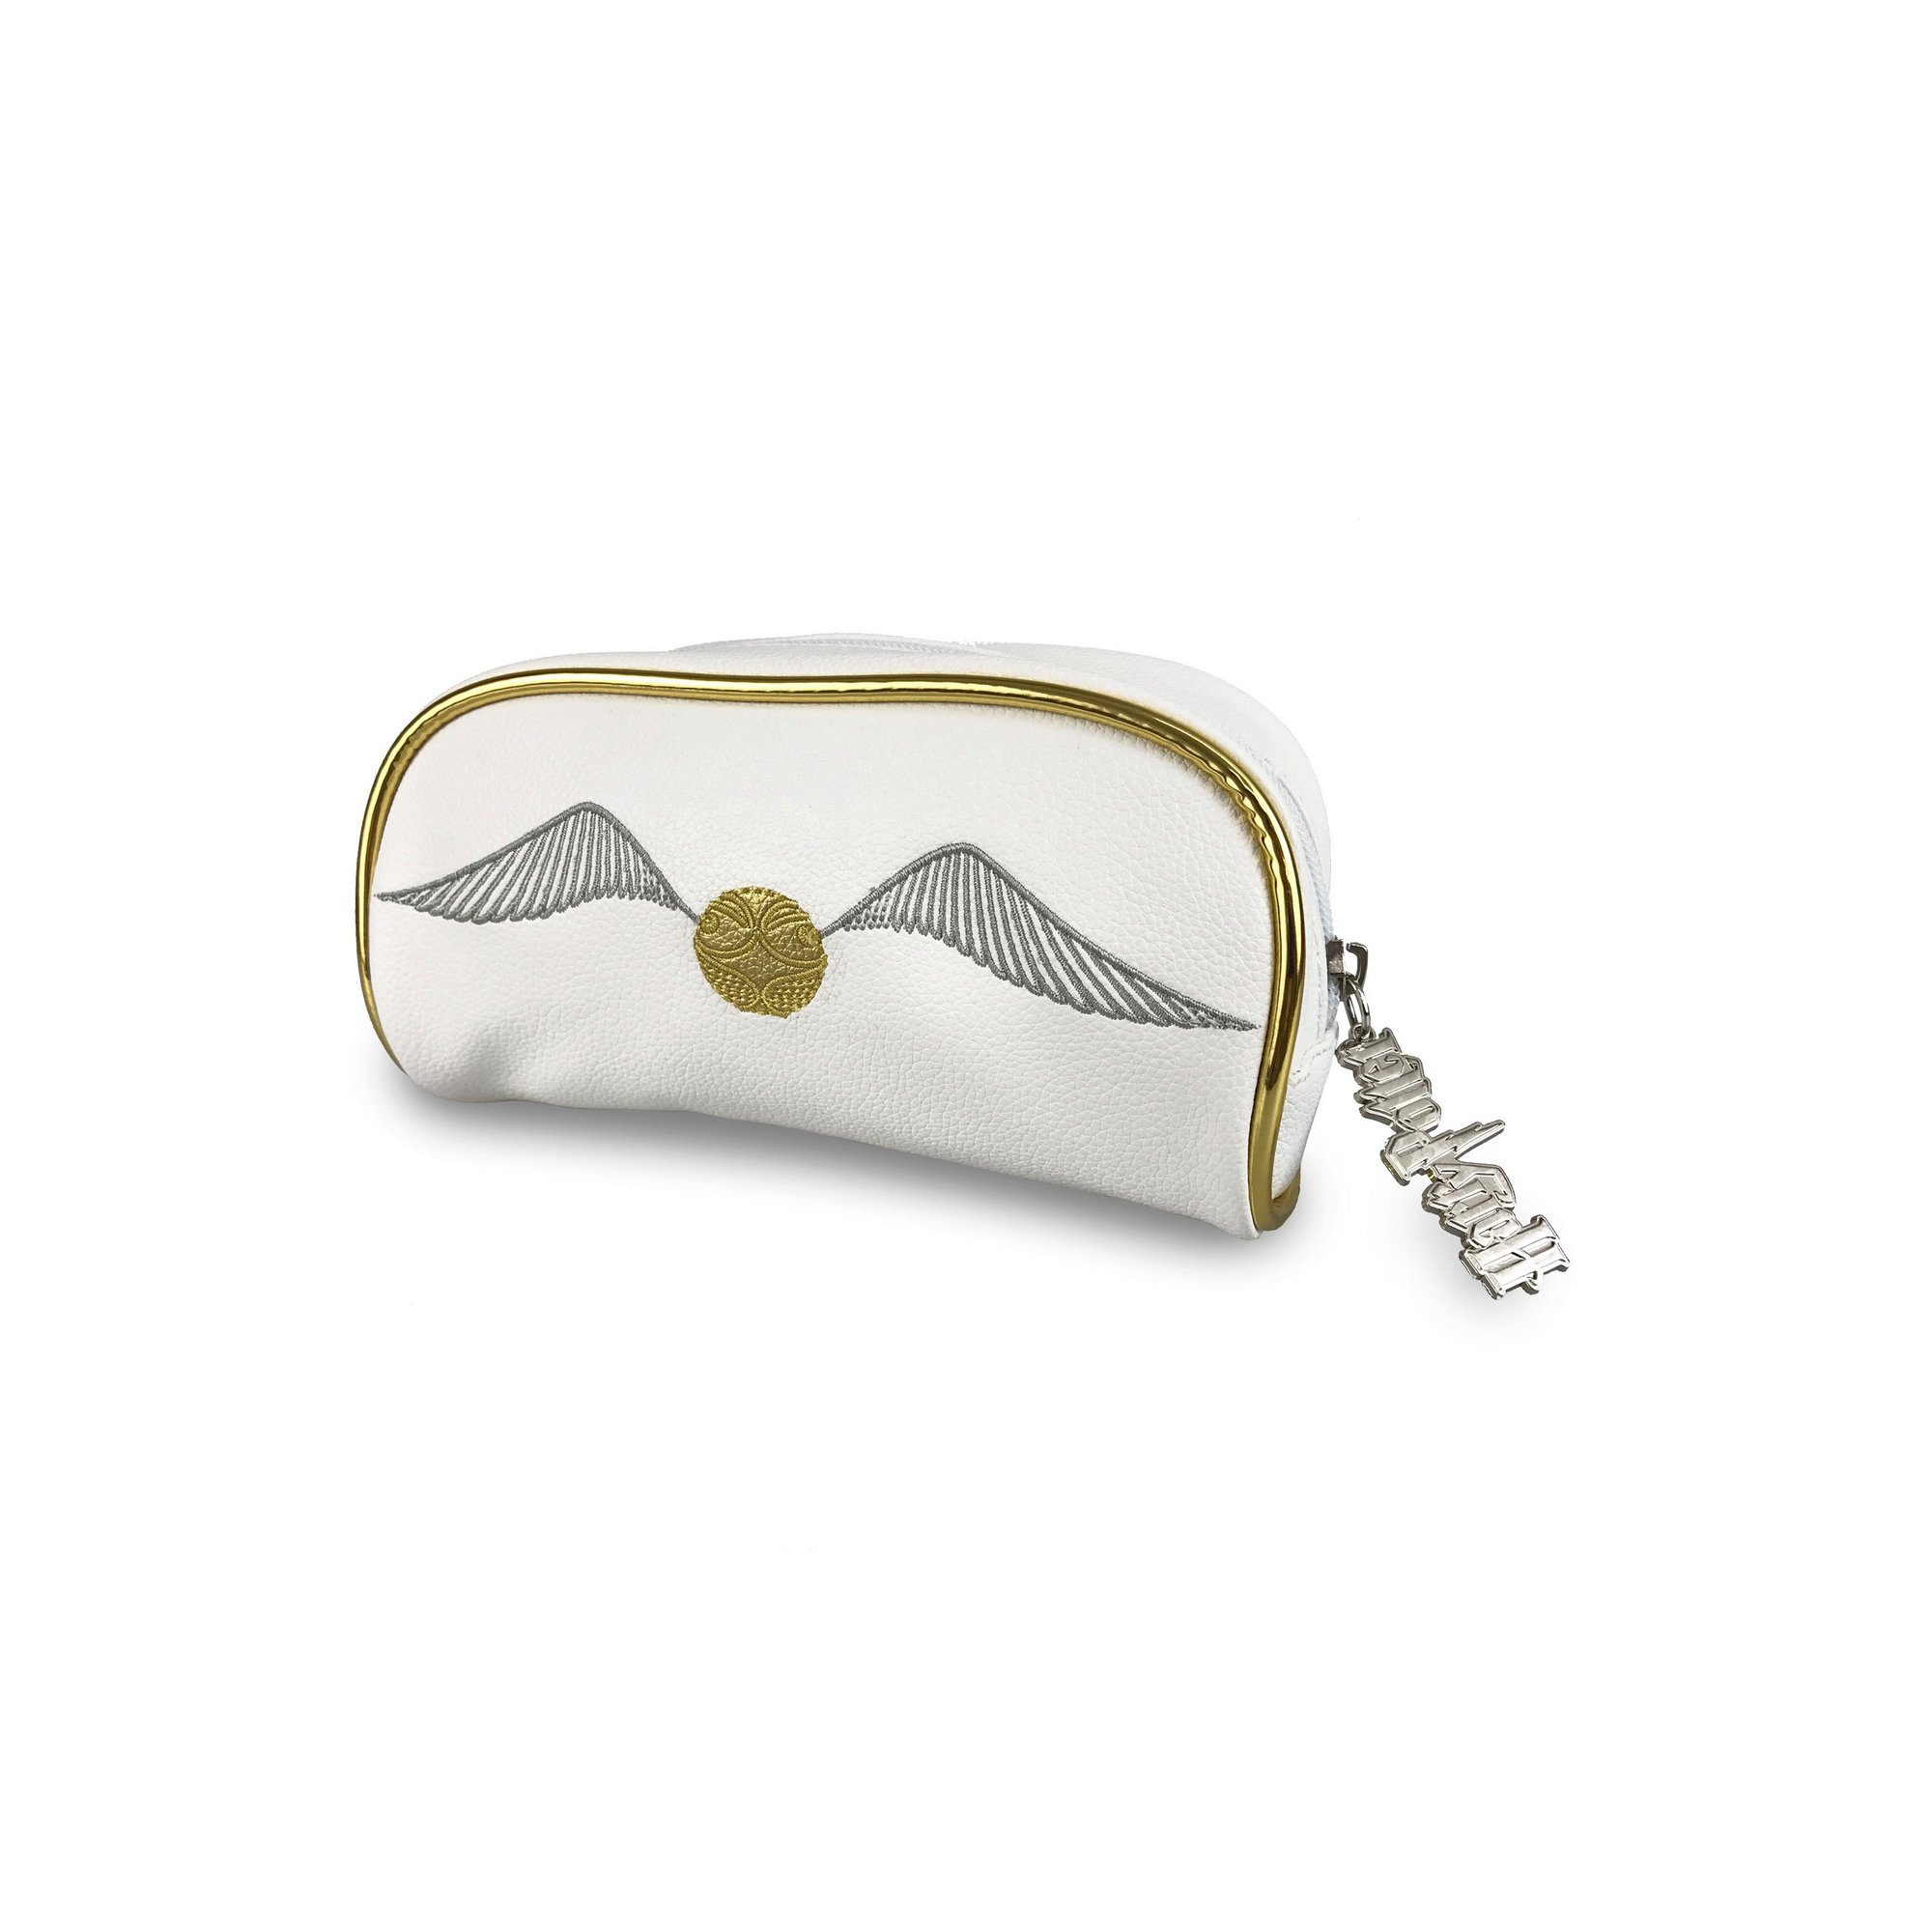 Image of Golden Snitch Harry Potter Cosmetic Bag